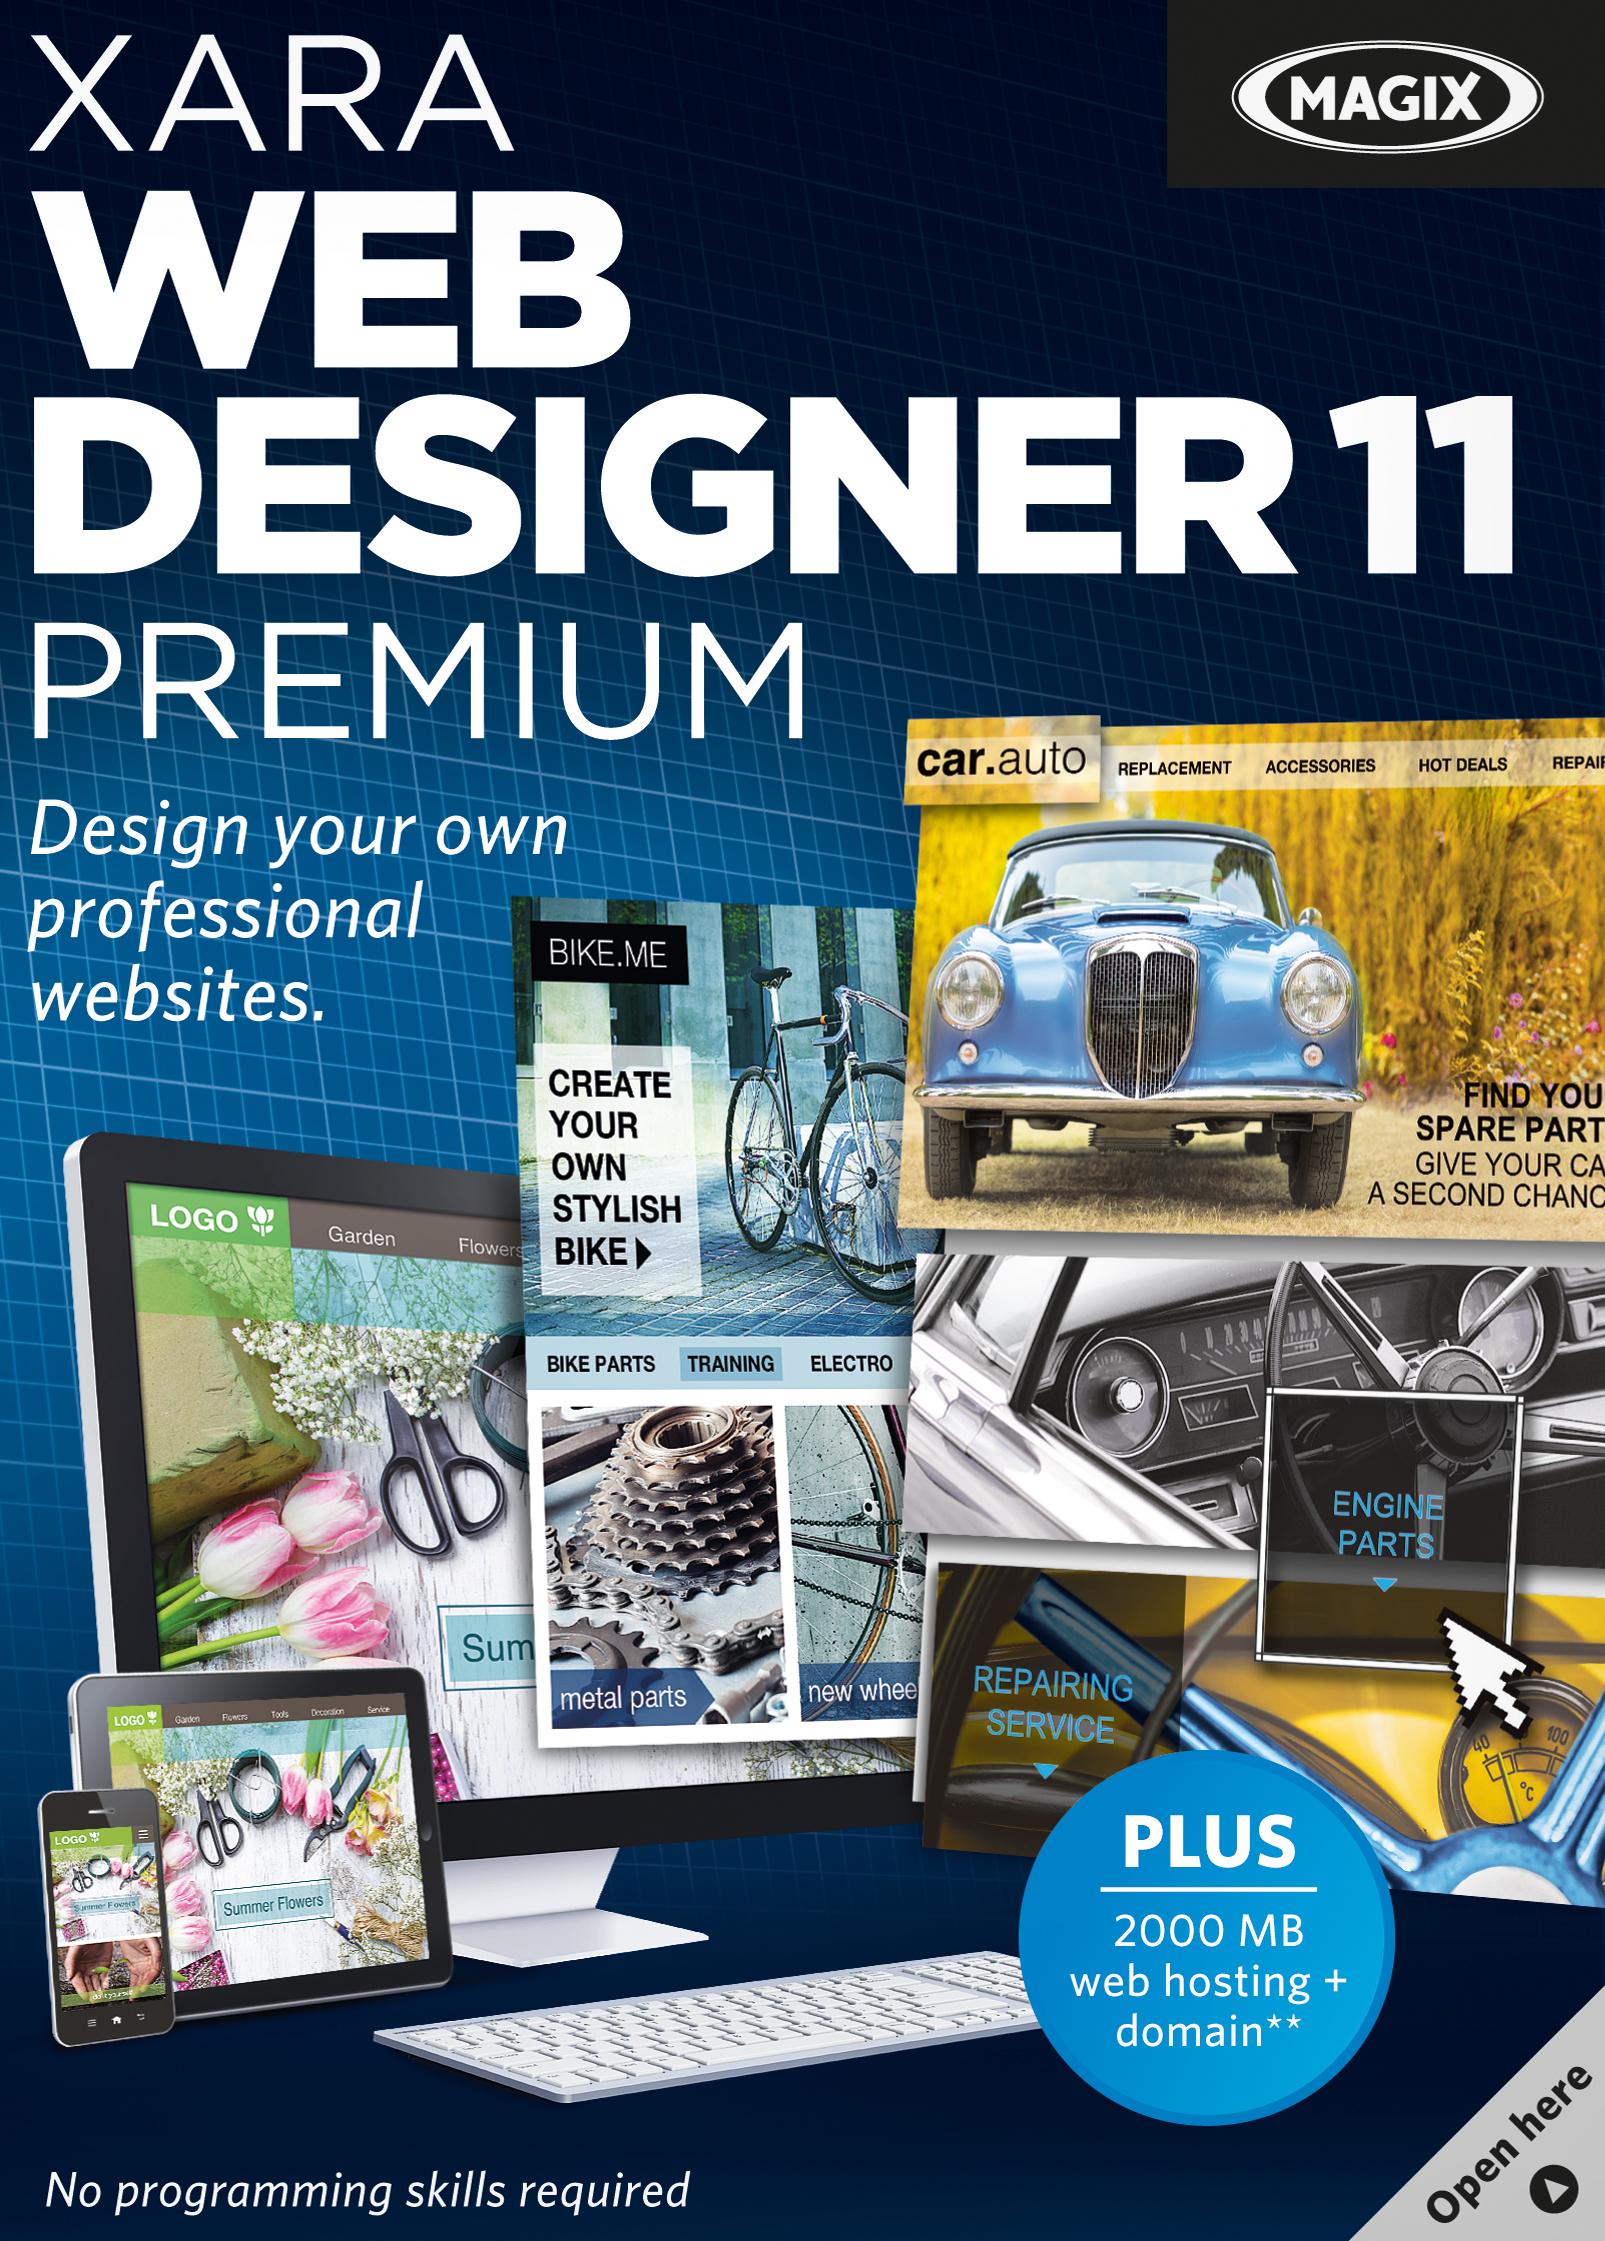 Xara Web Designer 11 Premium [Download] by MAGIX